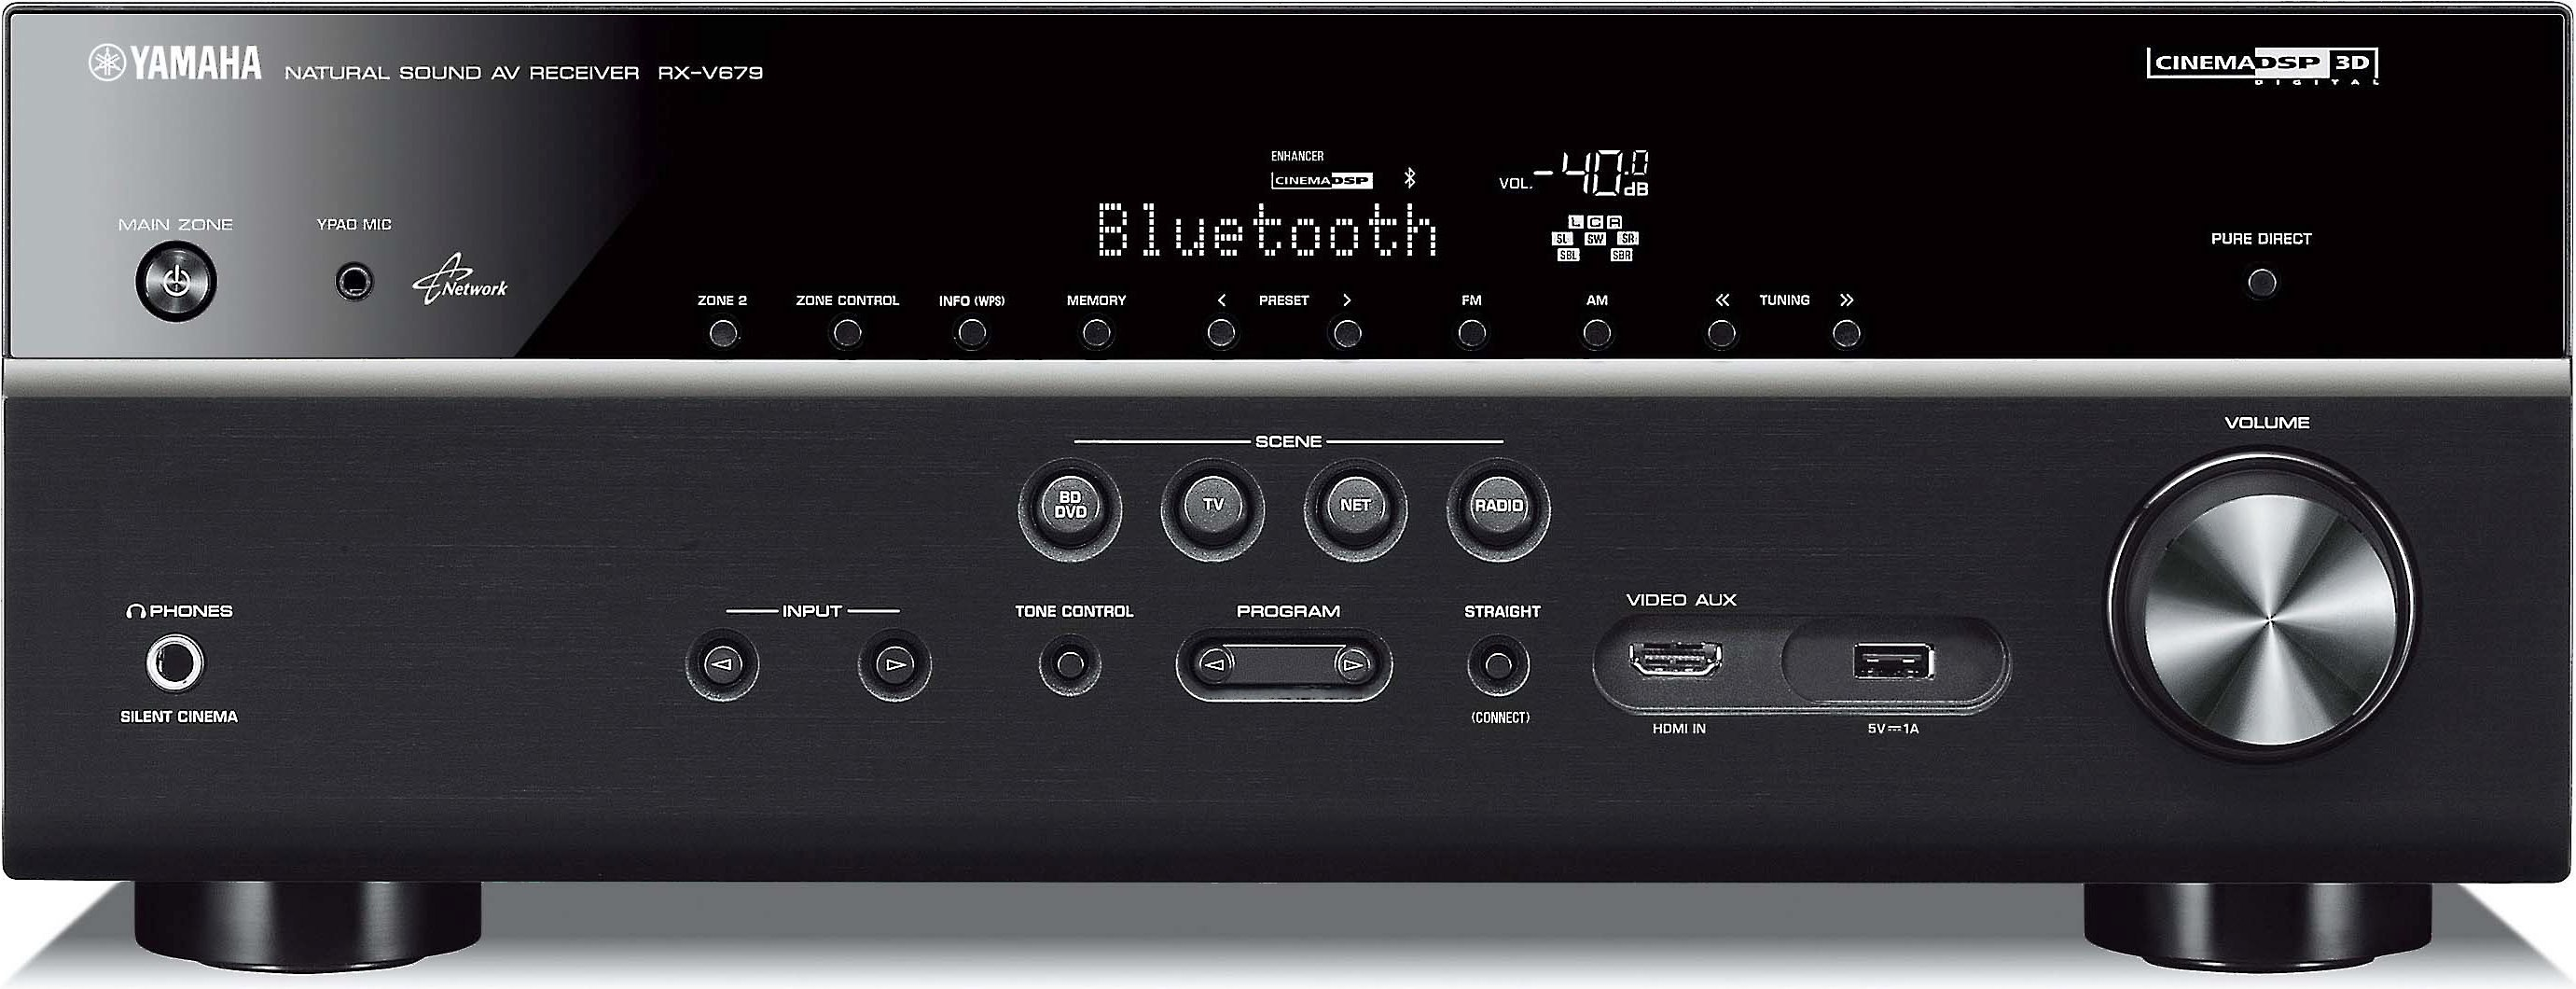 Yamaha Rx V679 72 Channel Home Theater Receiver With Wi Fi Bluetooth And Apple Airplay At Crutchfield